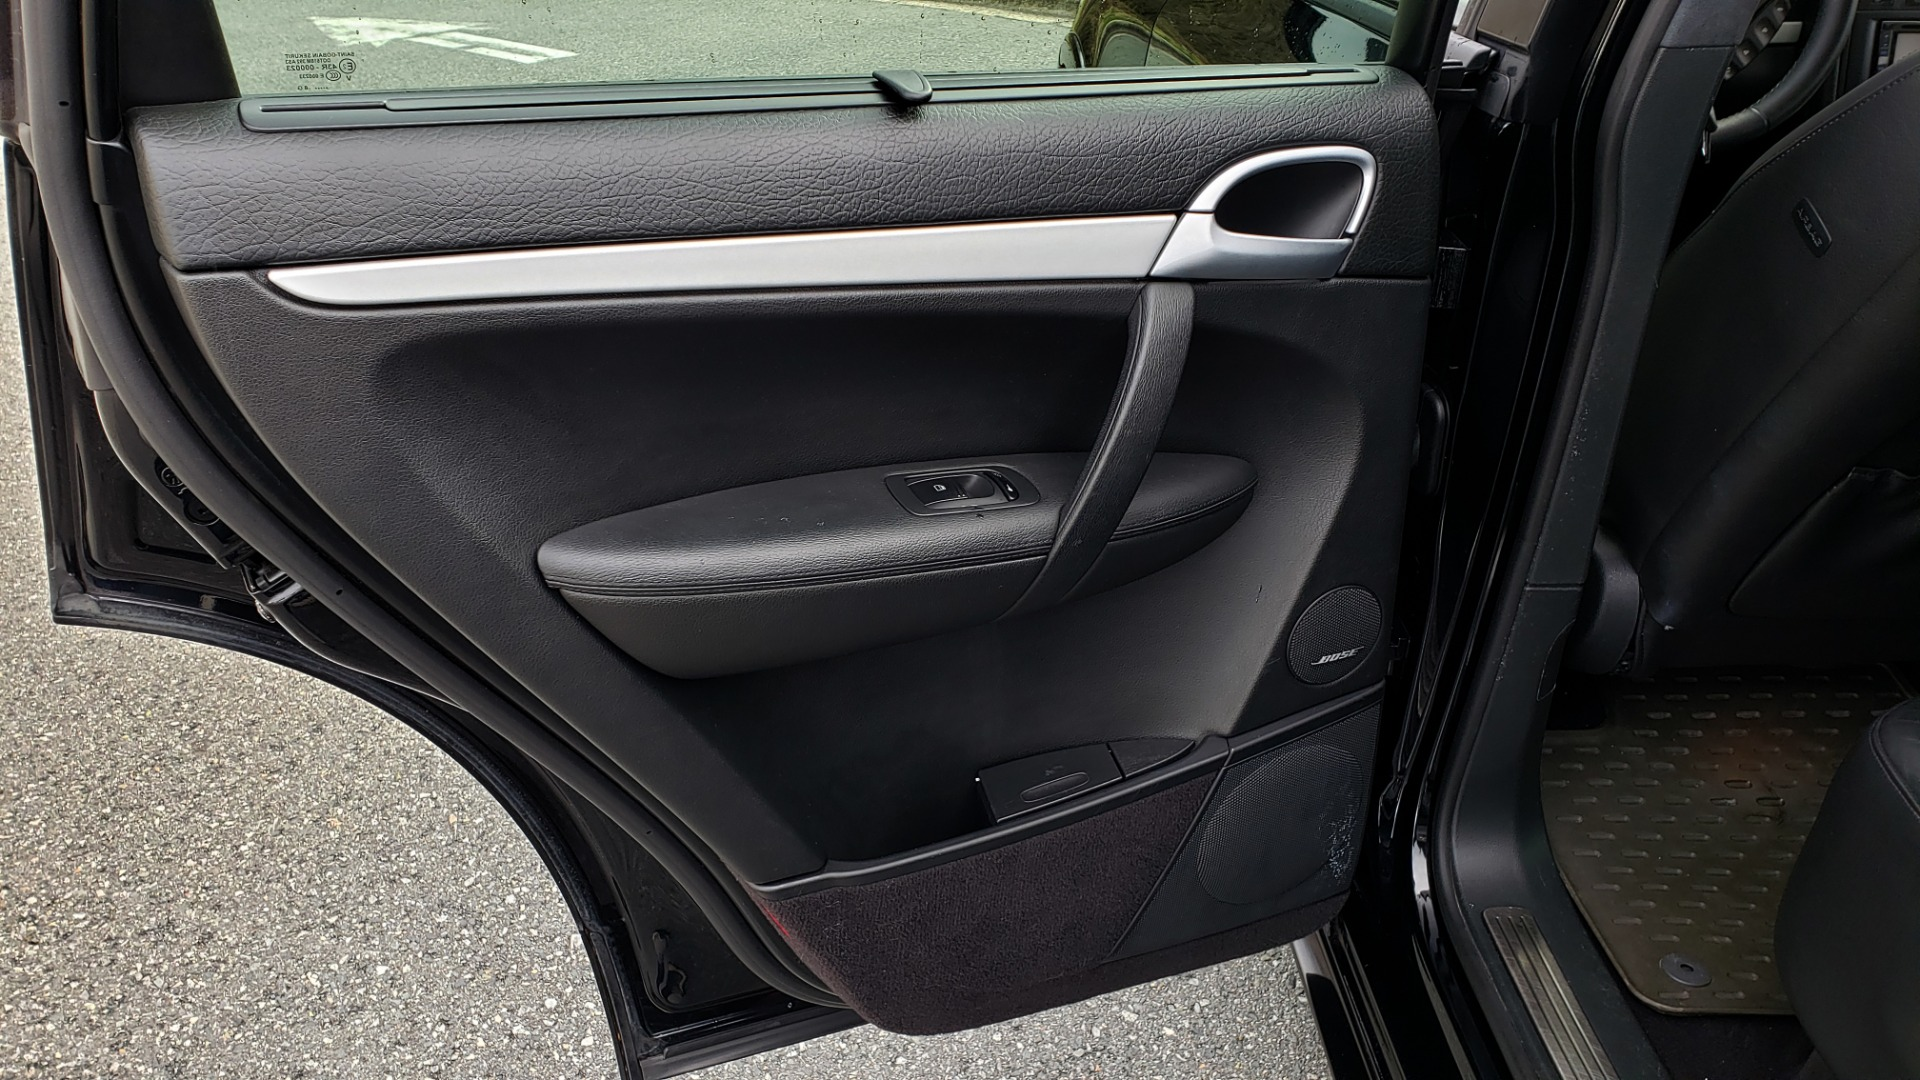 Used 2008 Porsche CAYENNE GTS TIPTRONIC / NAV / SUNROOF / REARVIEW / BOSE for sale Sold at Formula Imports in Charlotte NC 28227 70